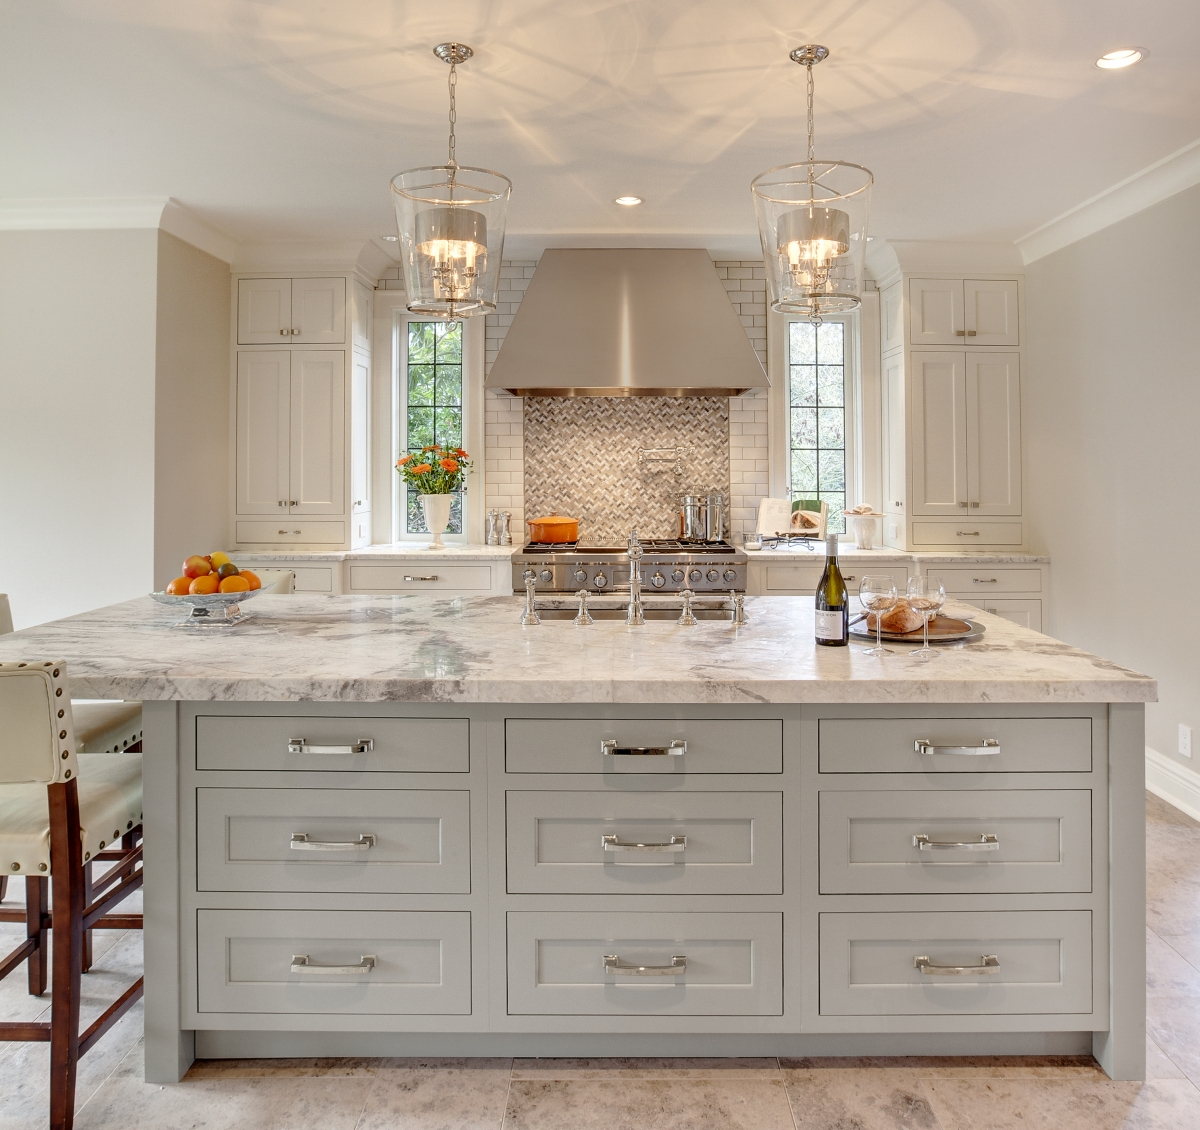 Inspiring Color Palettes for Your Kitchen | Signature ...